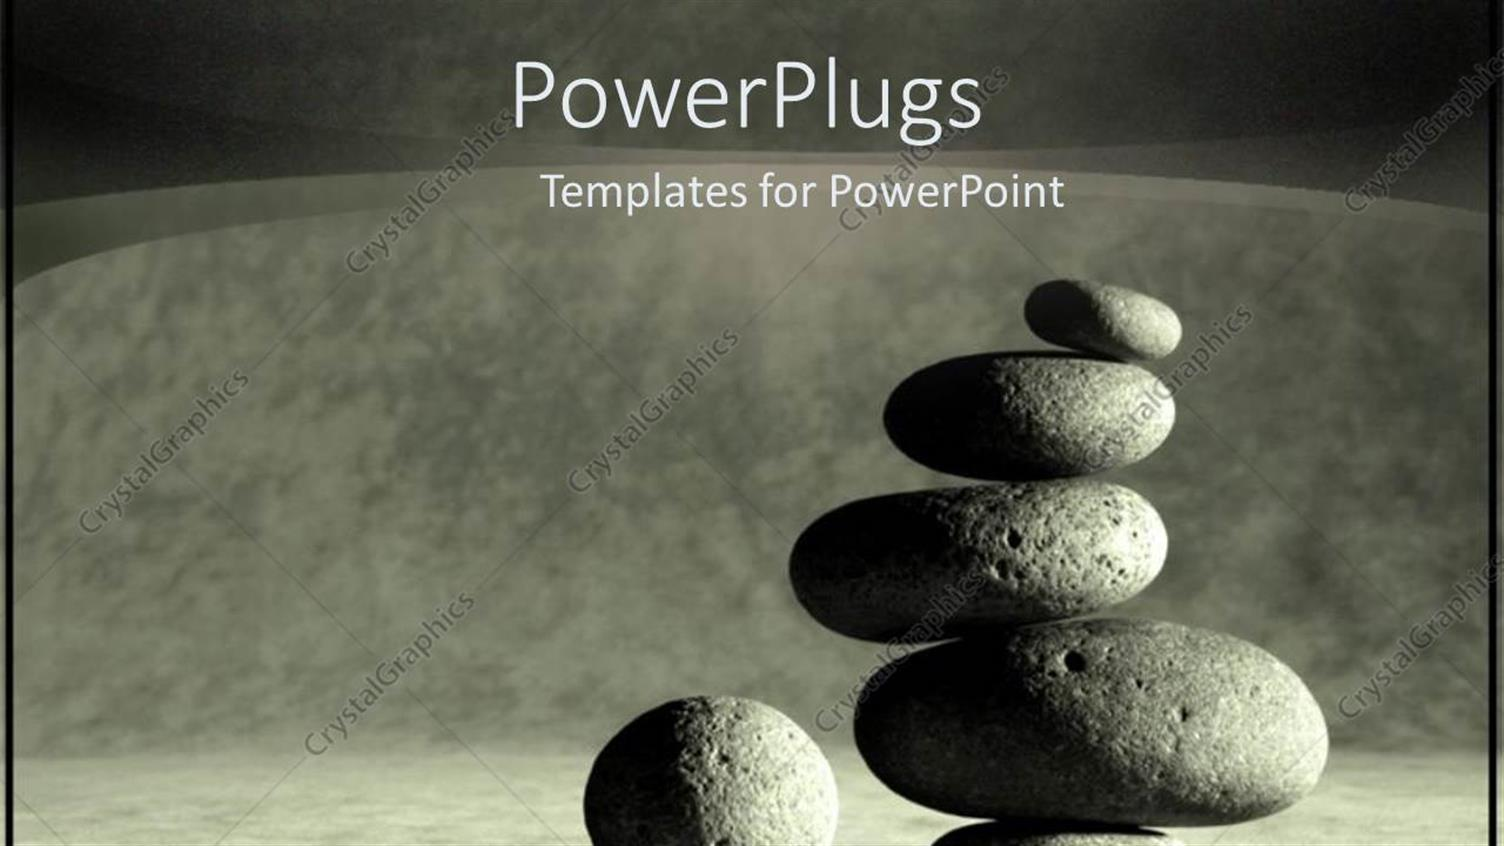 PowerPoint Template Displaying Balancing Stacking Stones as a Metaphor for Center and Peace in Black and White